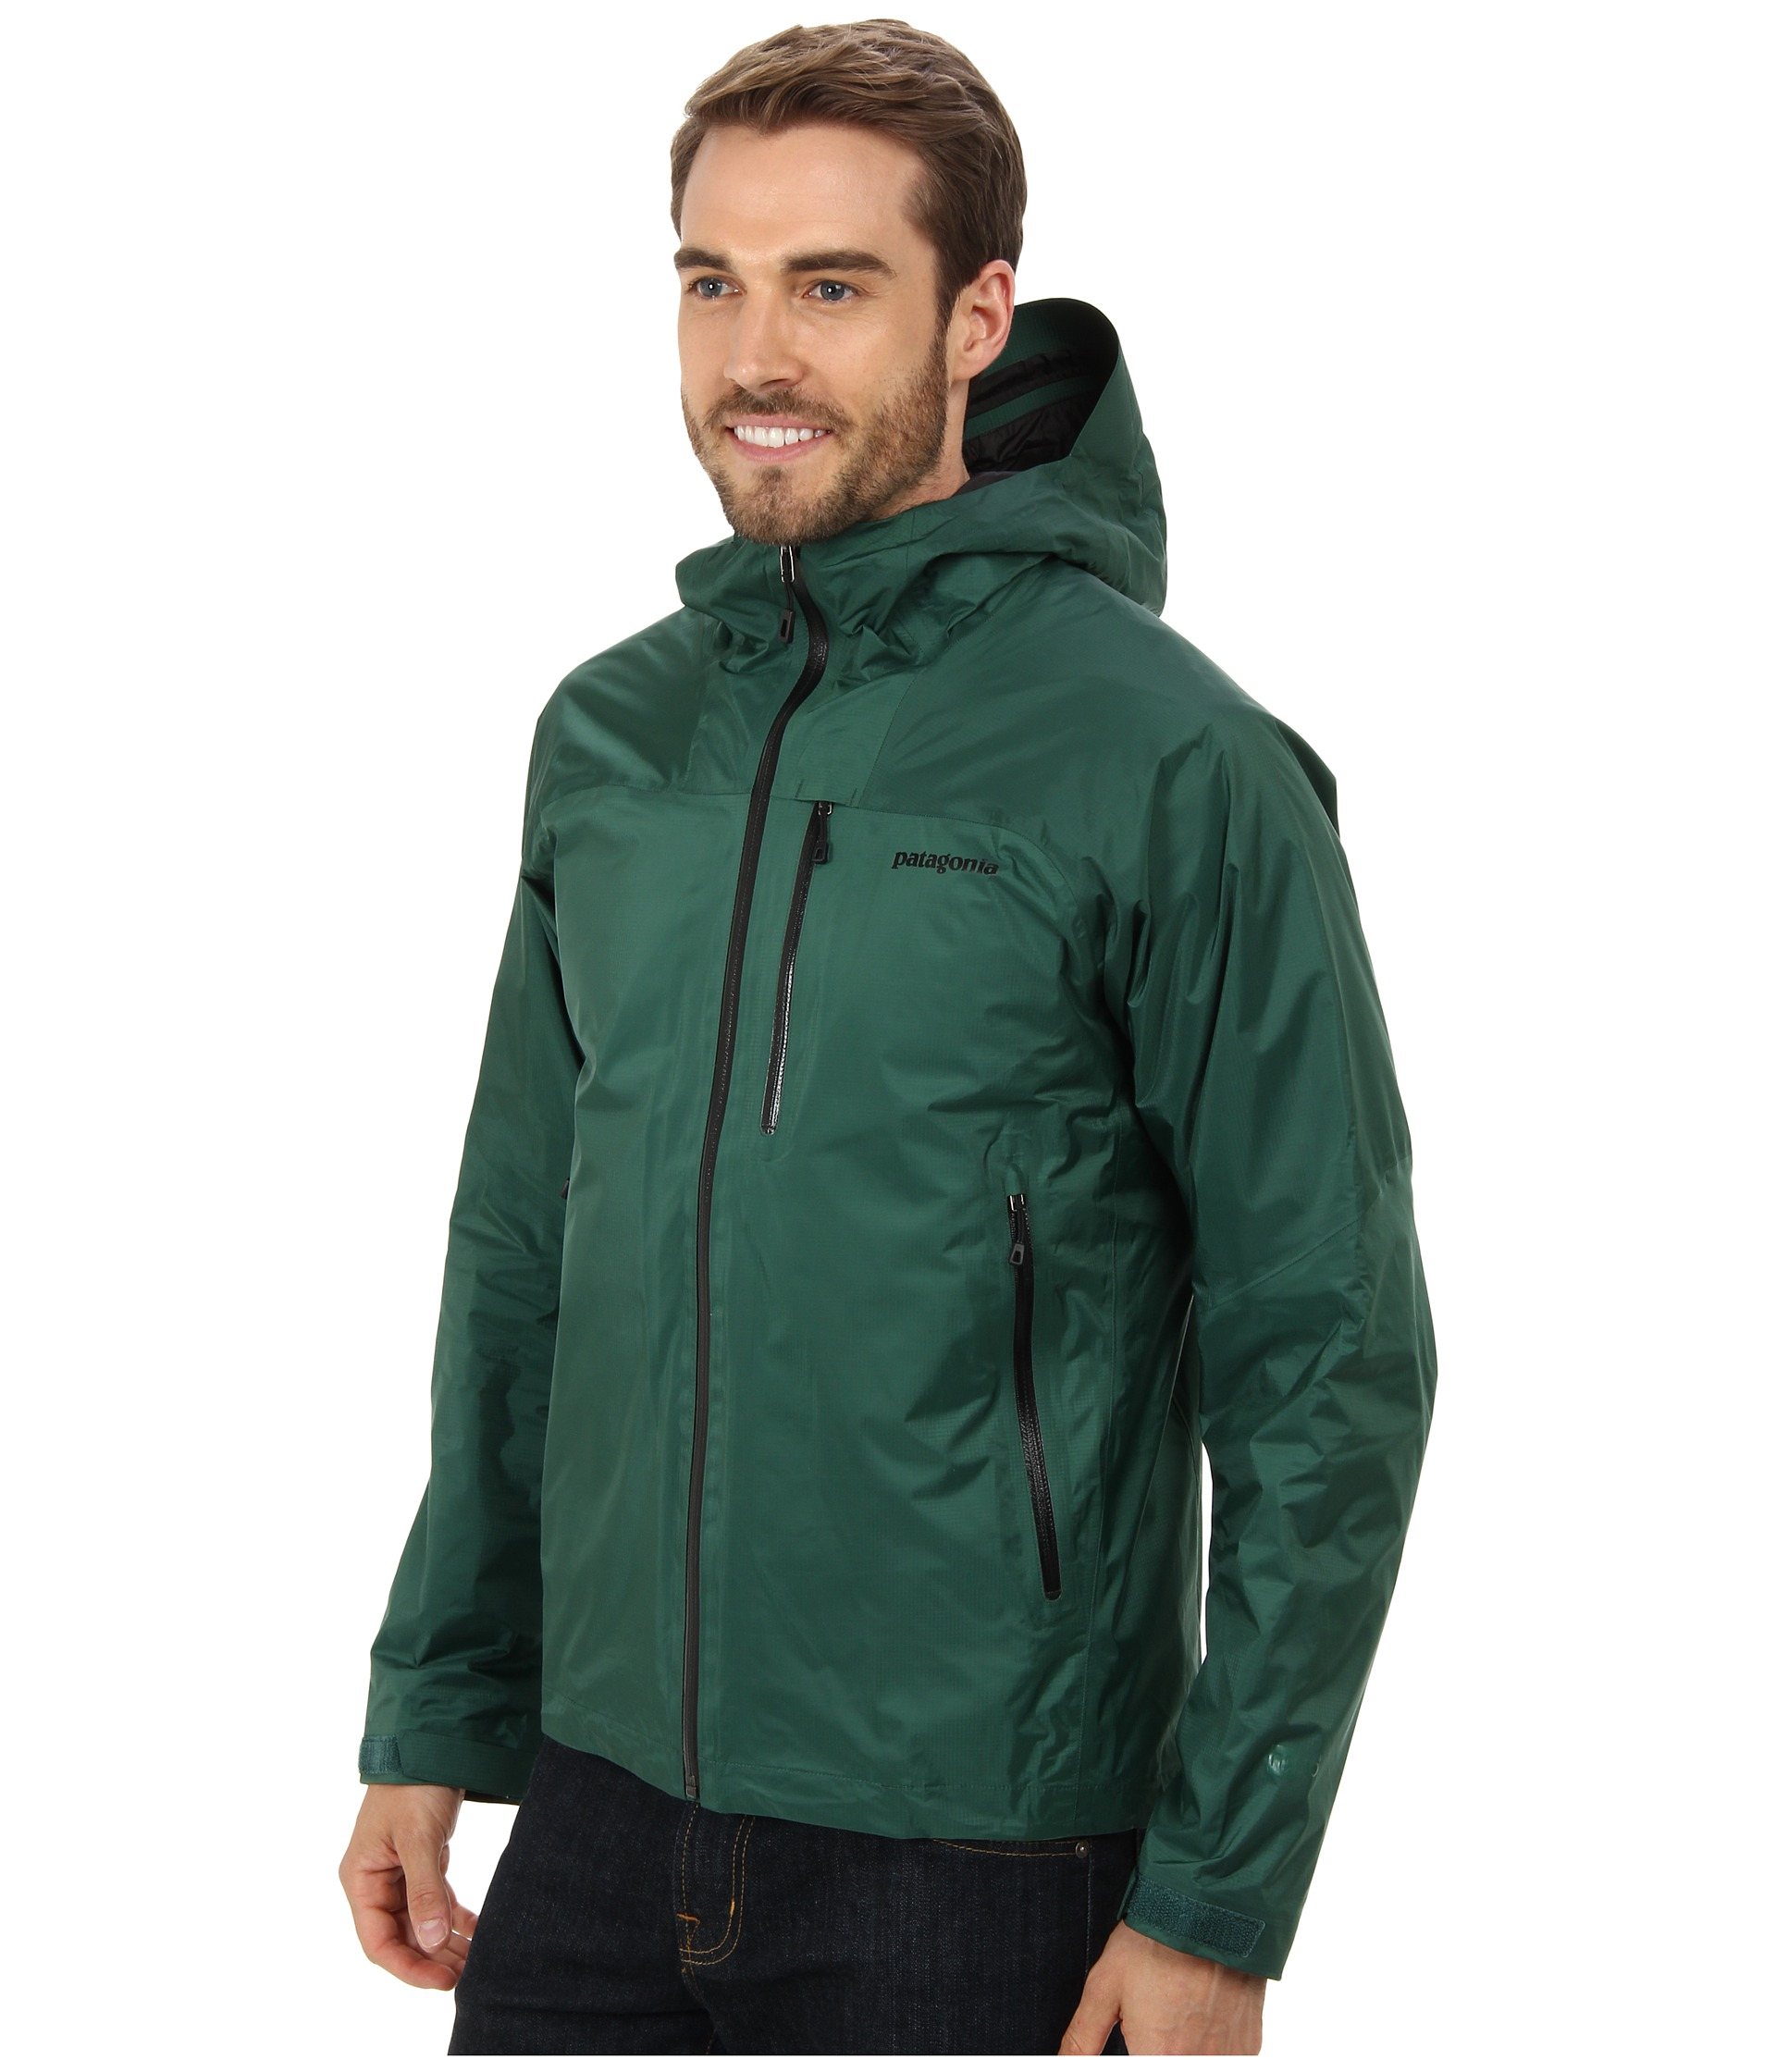 a8581d55e Patagonia Green Insulated Torrentshell Jacket for men